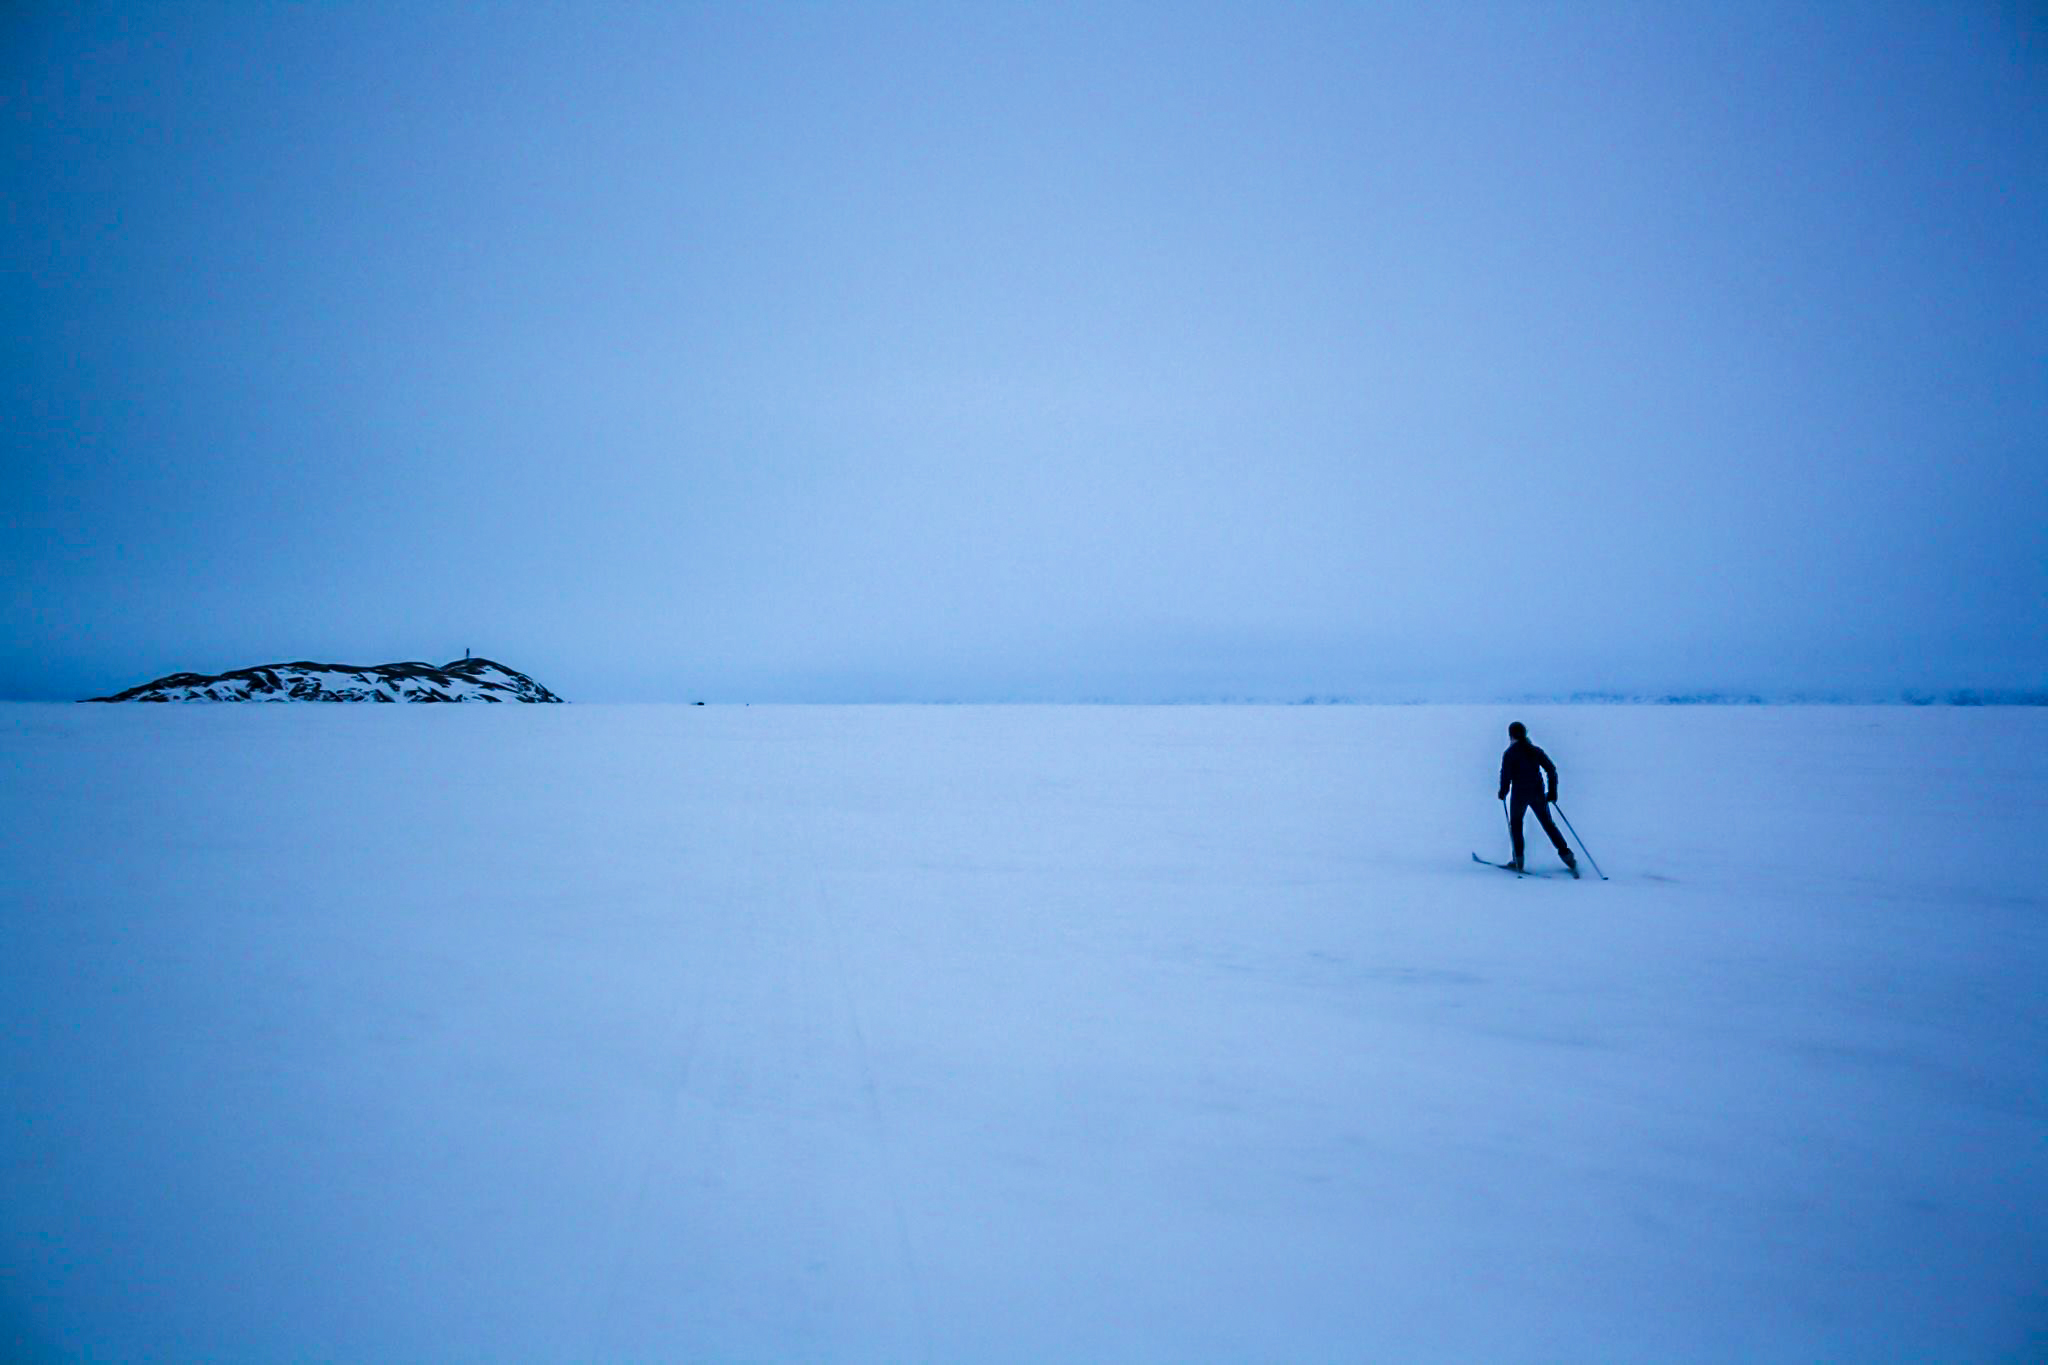 Skiing to the yurt. Photo by Sean Doherty.